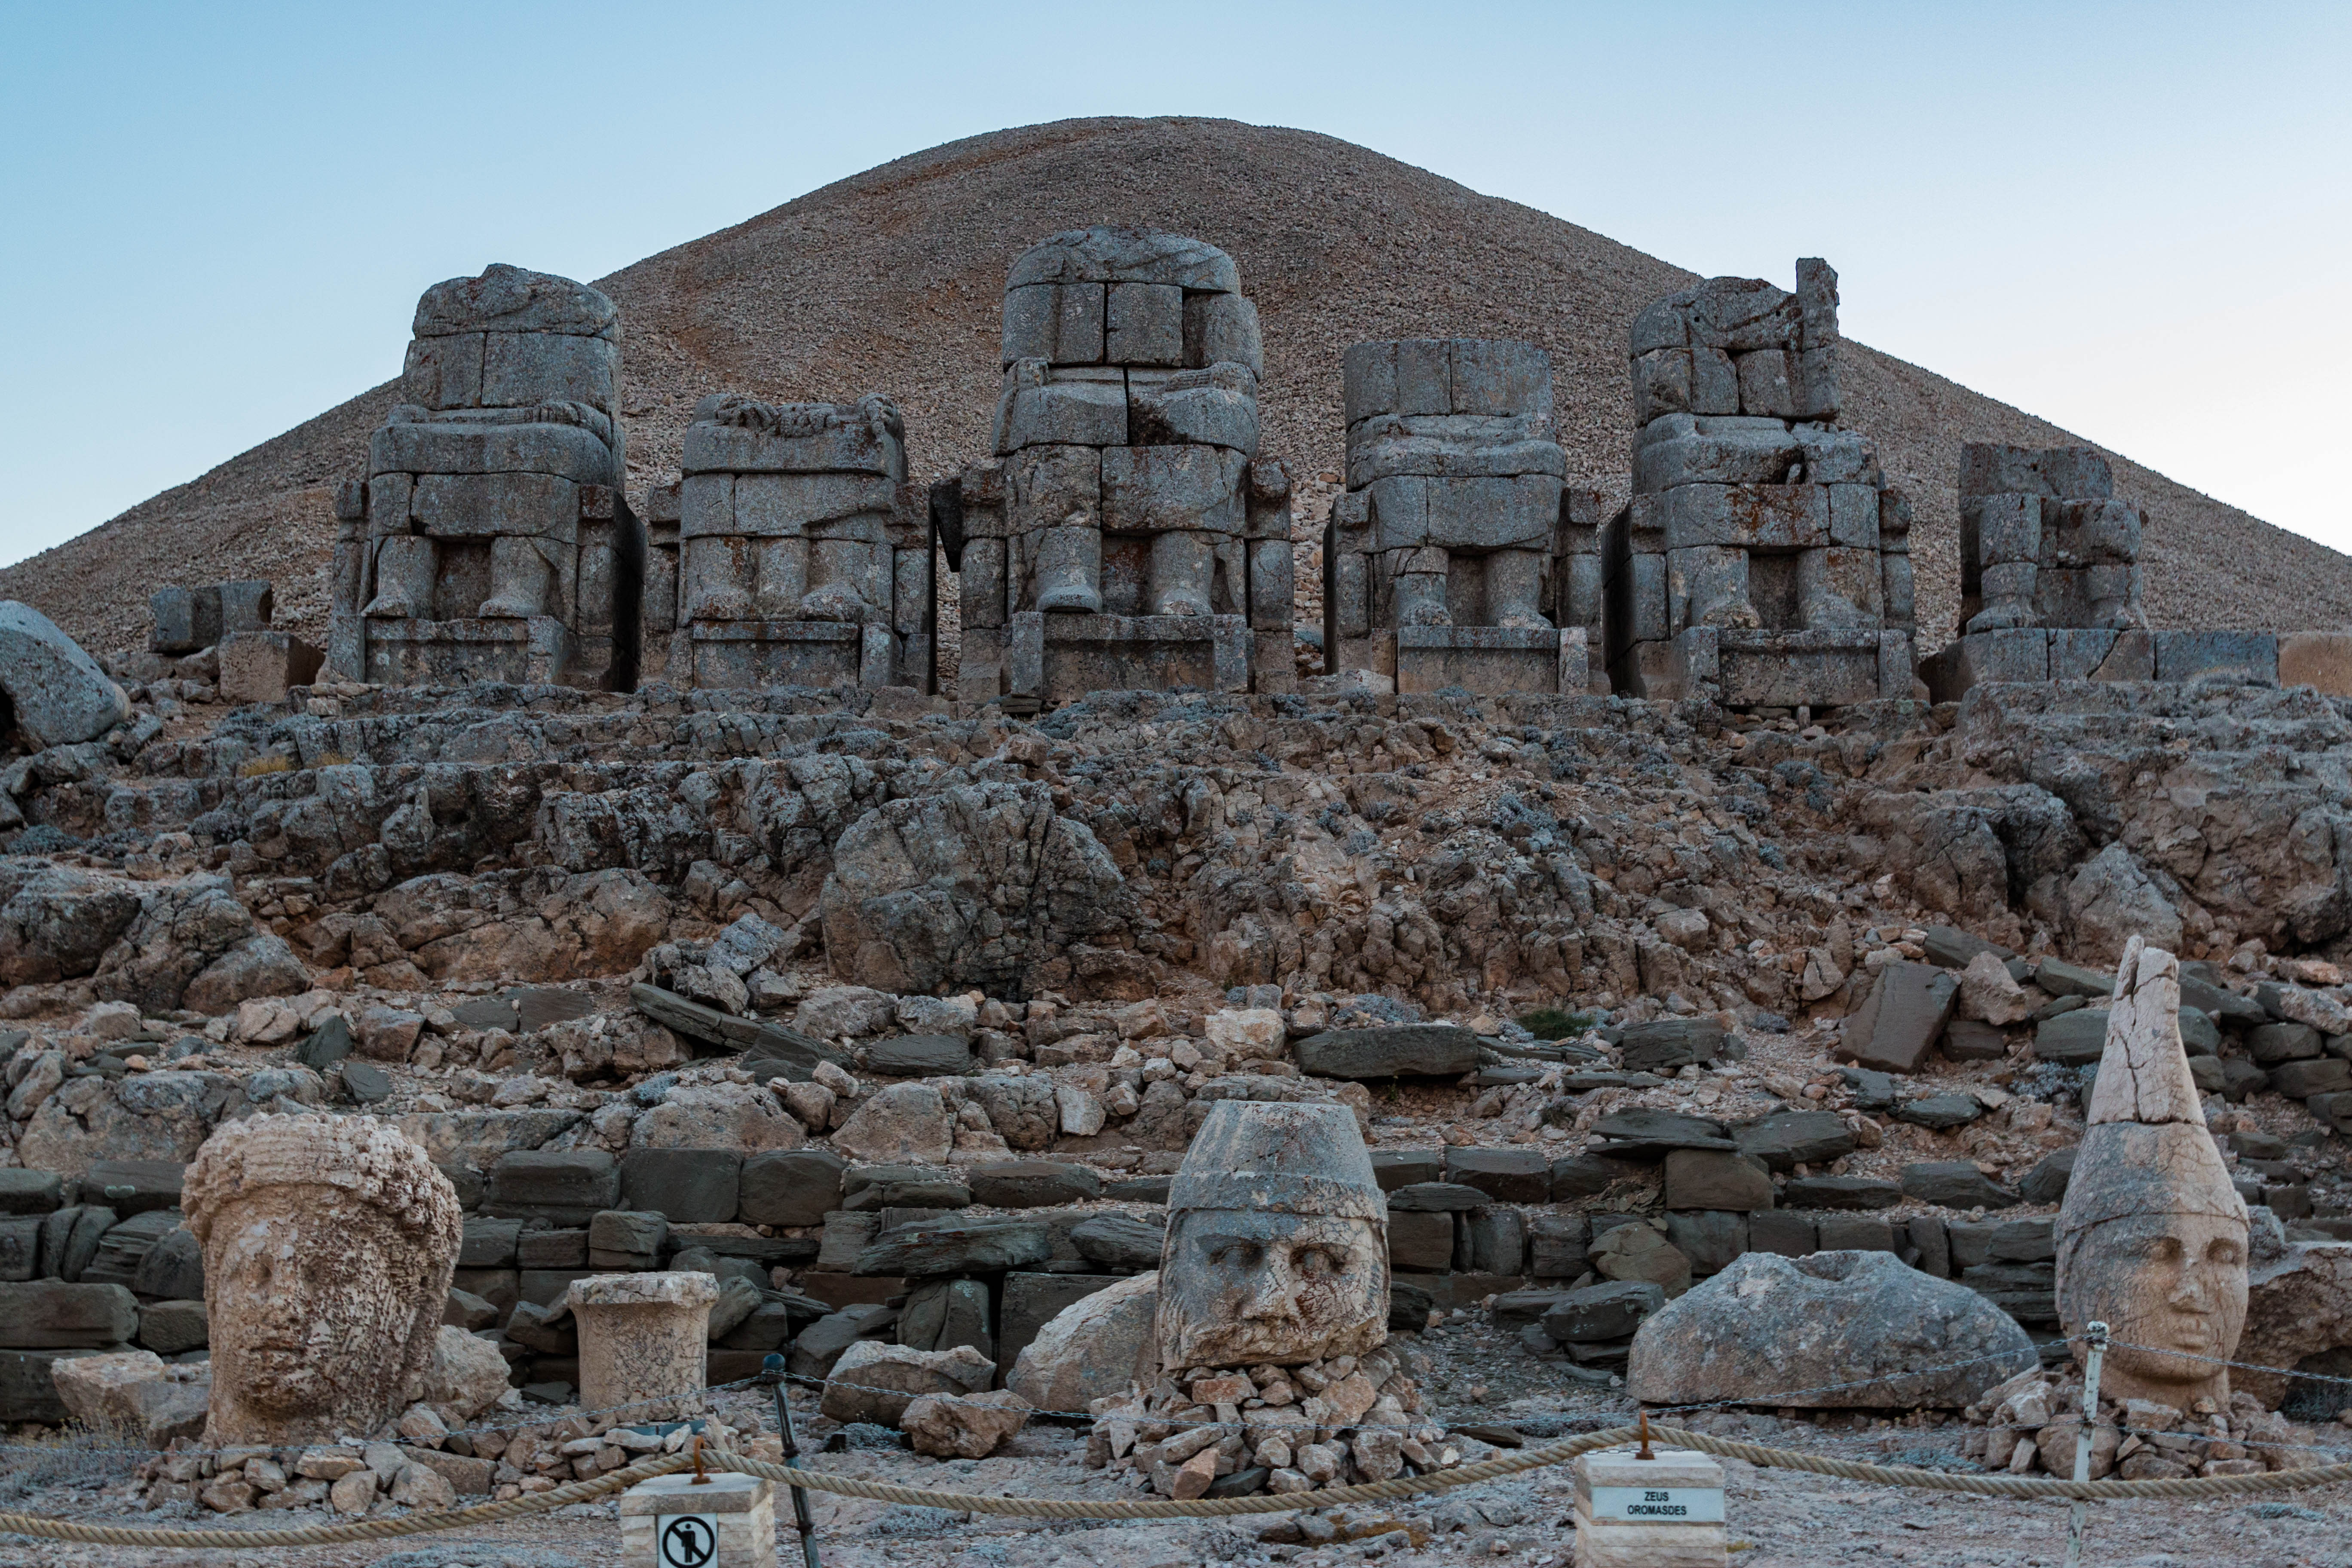 Nemrut Dagi mount Nimrut greek monuments.